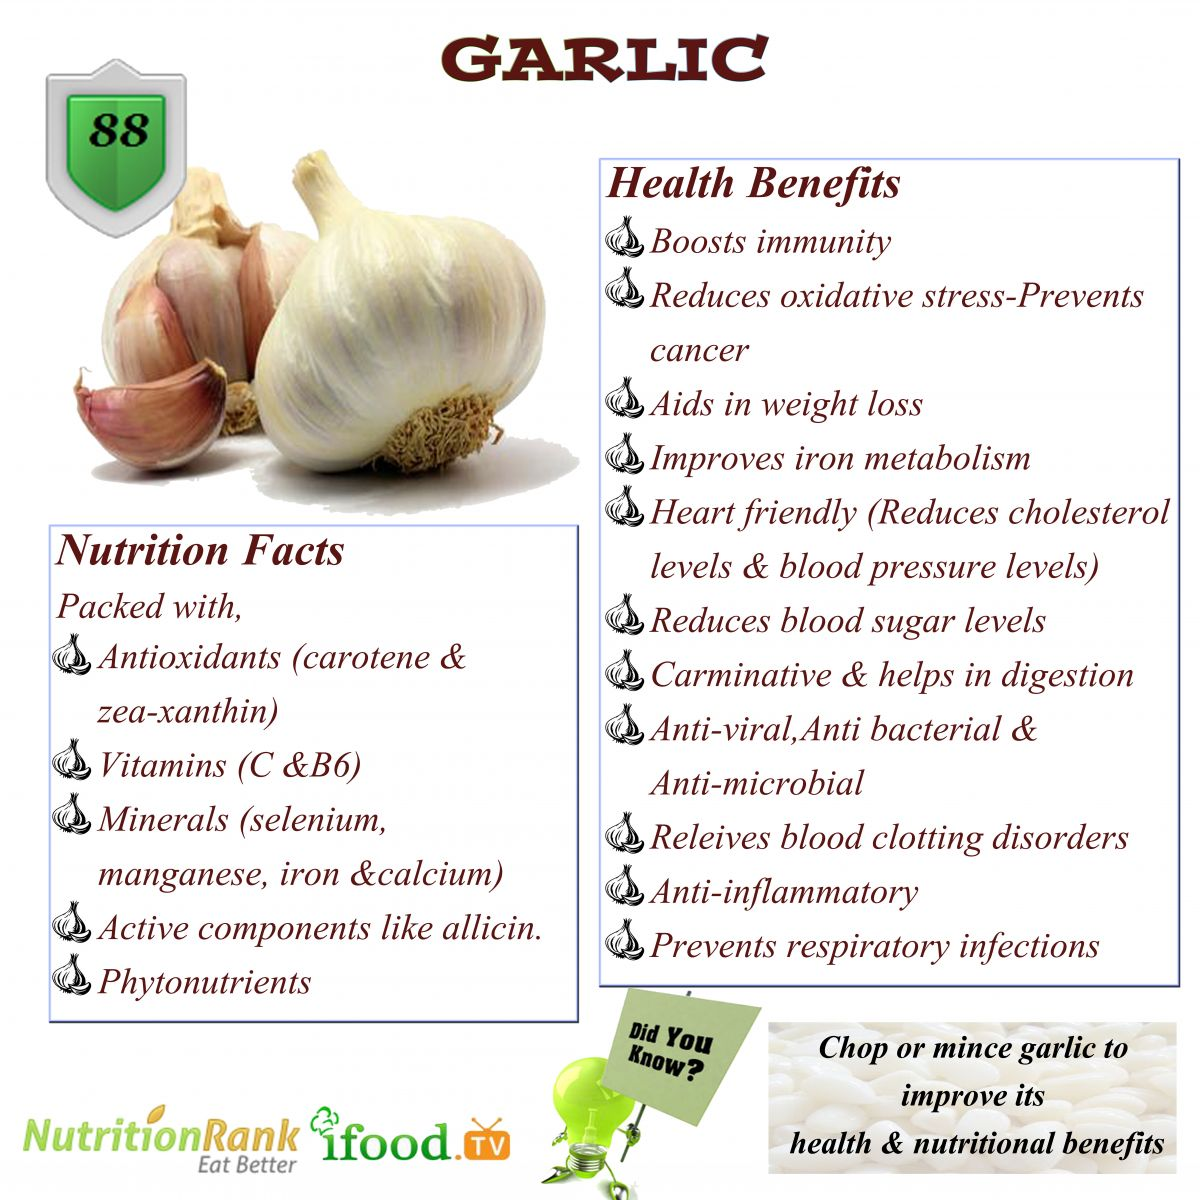 garlic antioxidants anti bacterial anti inflammatory infections